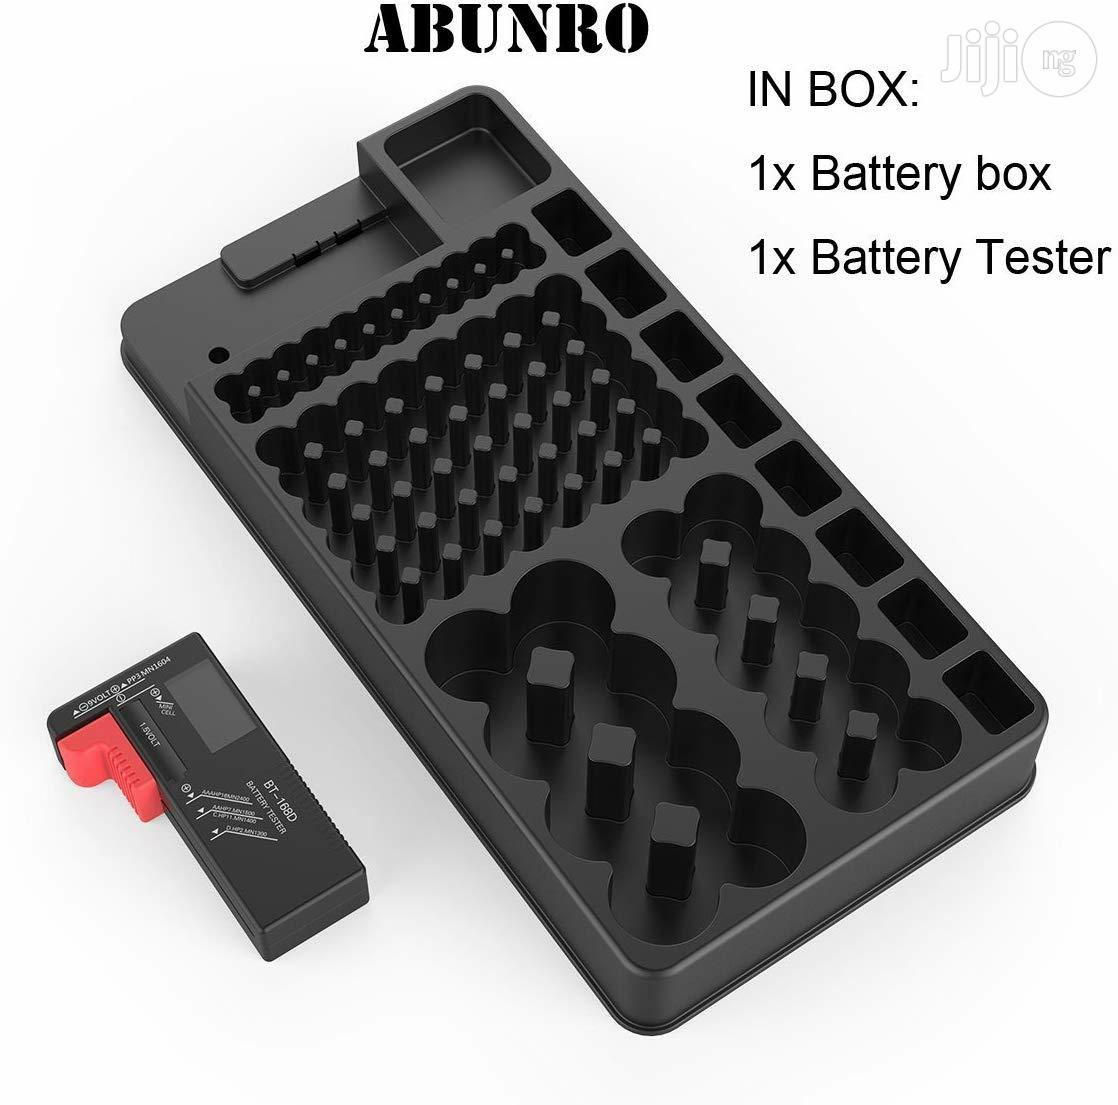 USA Abunro Battery Tester And Battery Storage Organizer Case